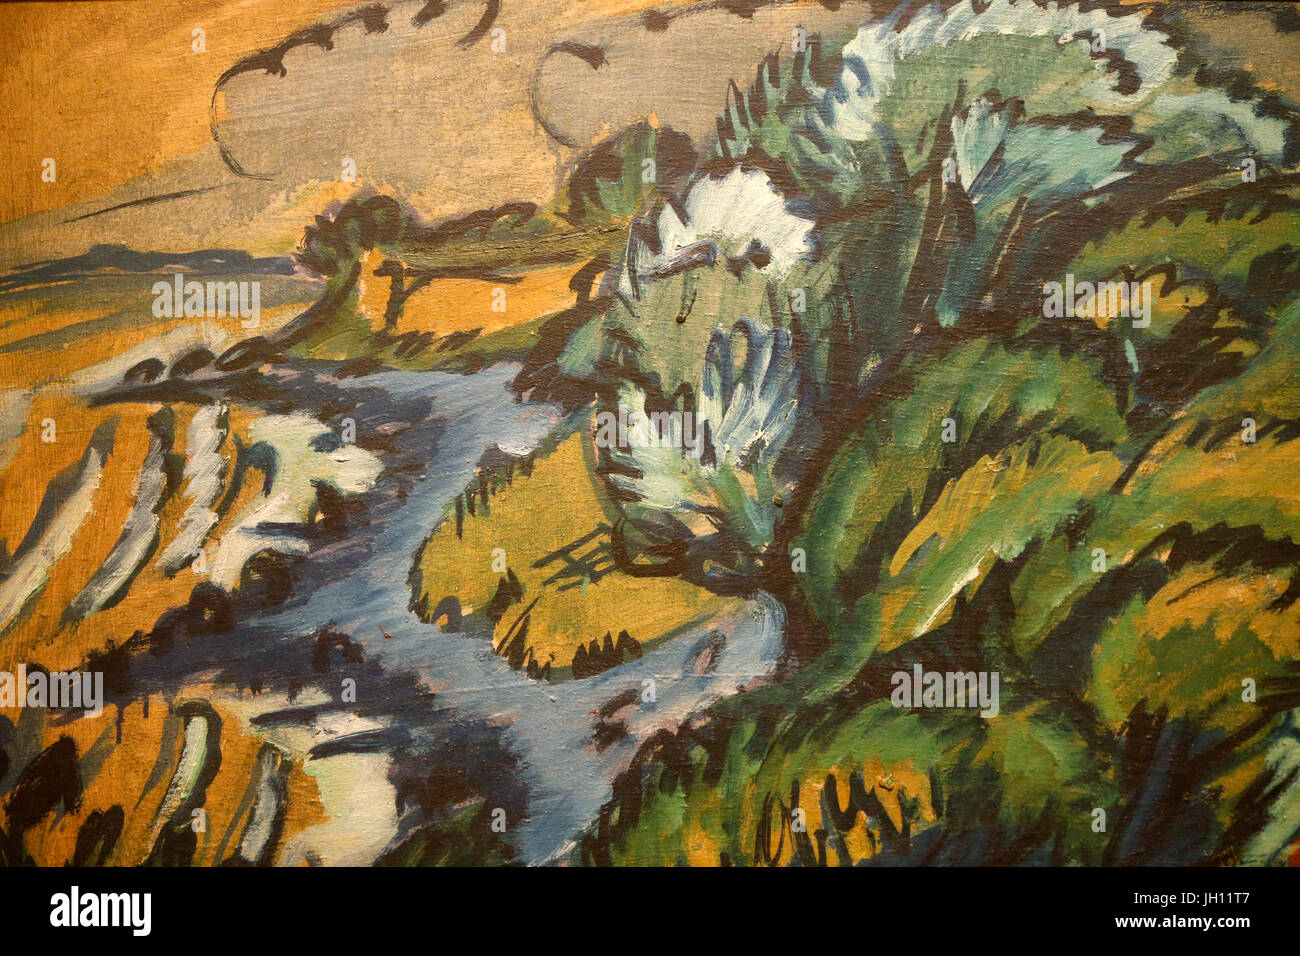 The Courtauld Gallery. Ernst Ludwig Kirchner. Coast of Fehmarn. 1912. Oil on canvas. United kingdom. - Stock Image